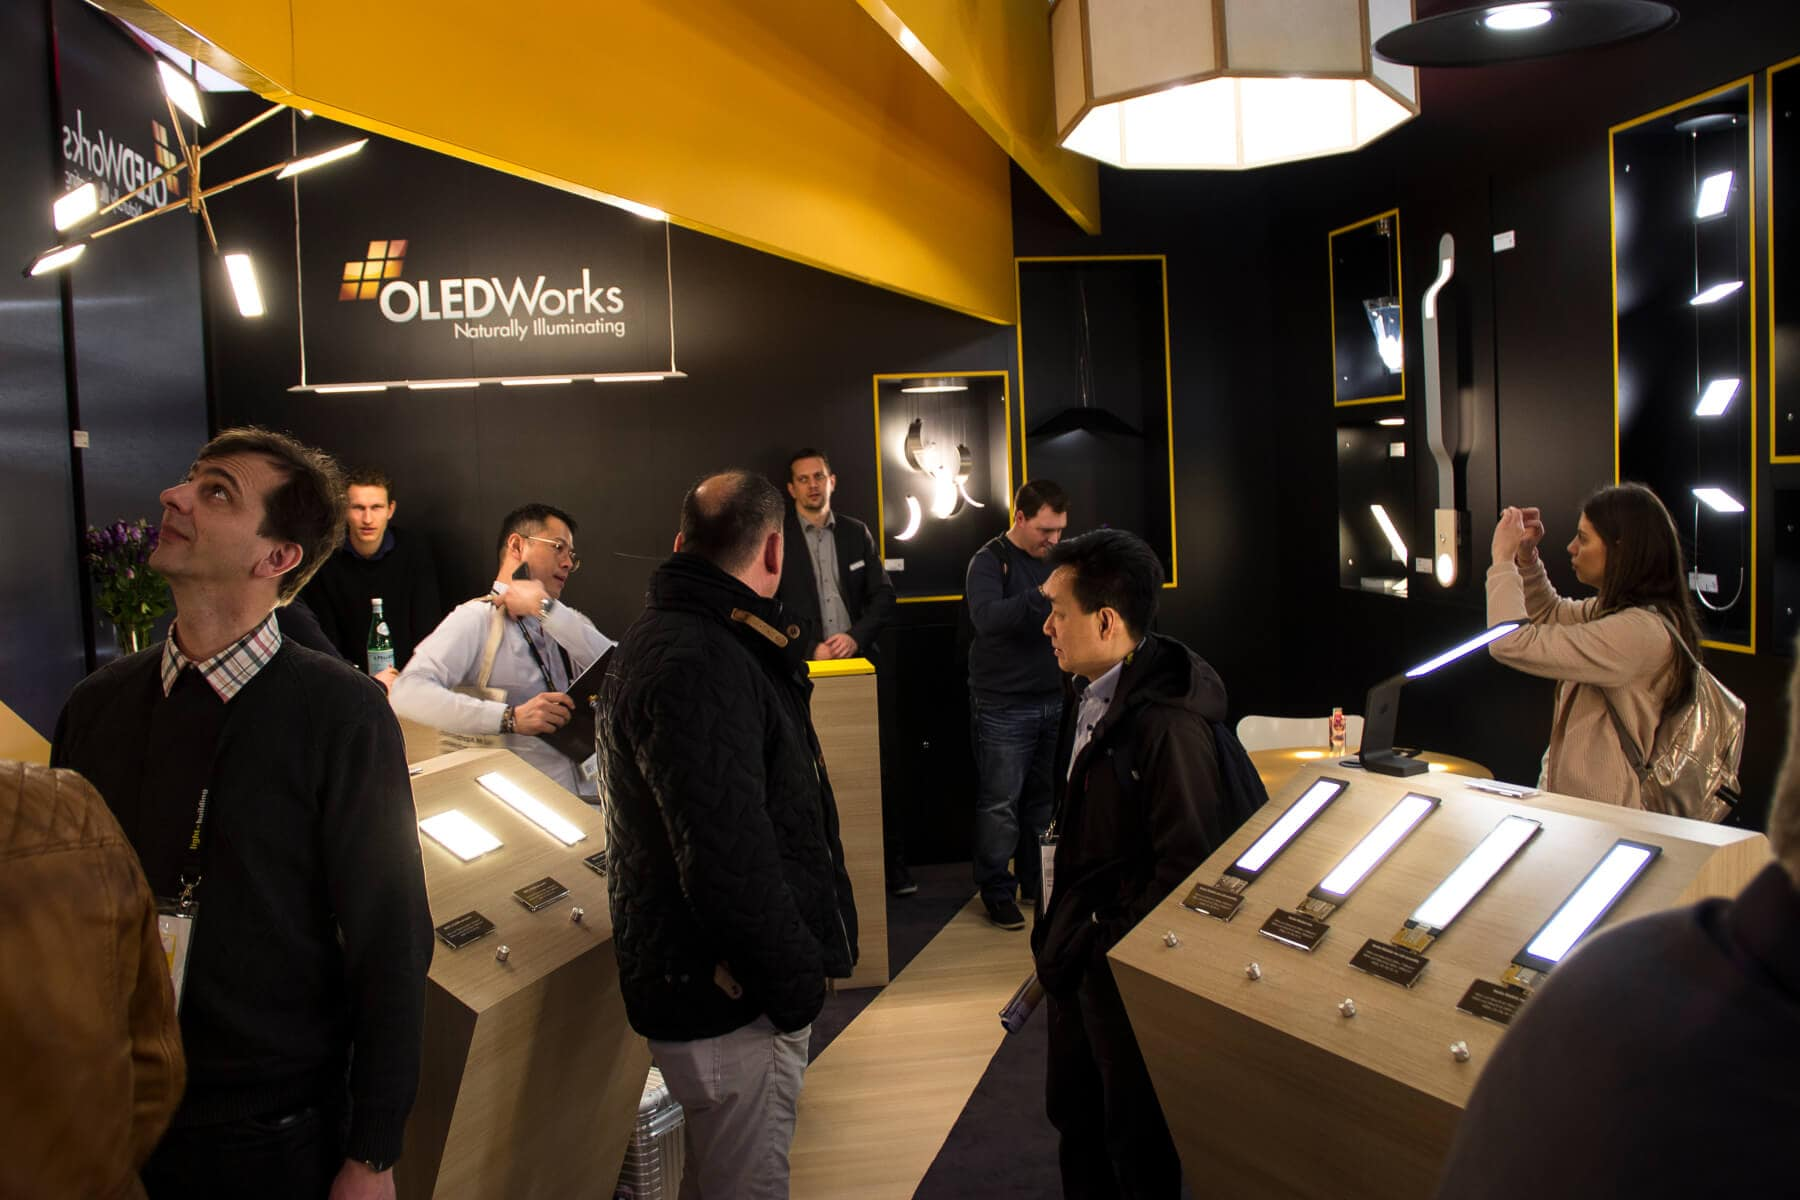 crowded OLEDWorks booth at Light + Building 2018